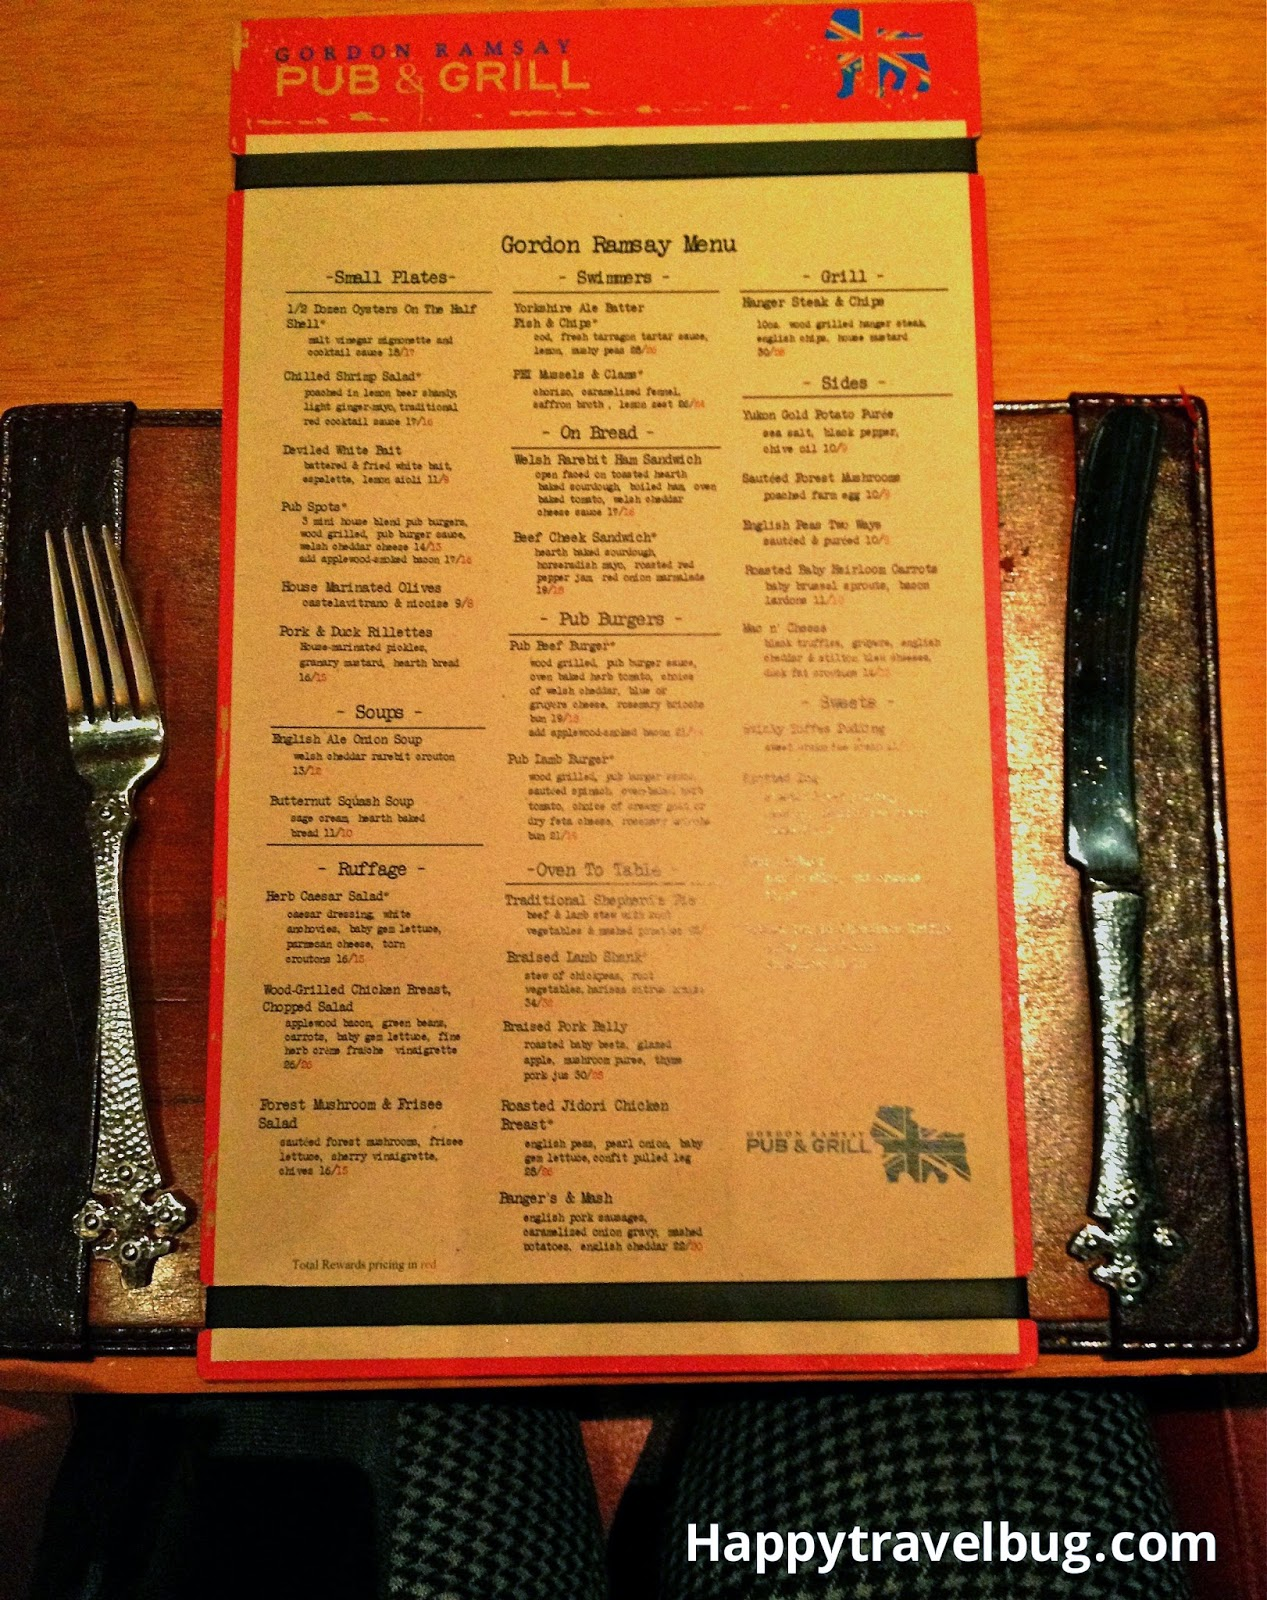 Gordon Ramsay Pub and Grill menu